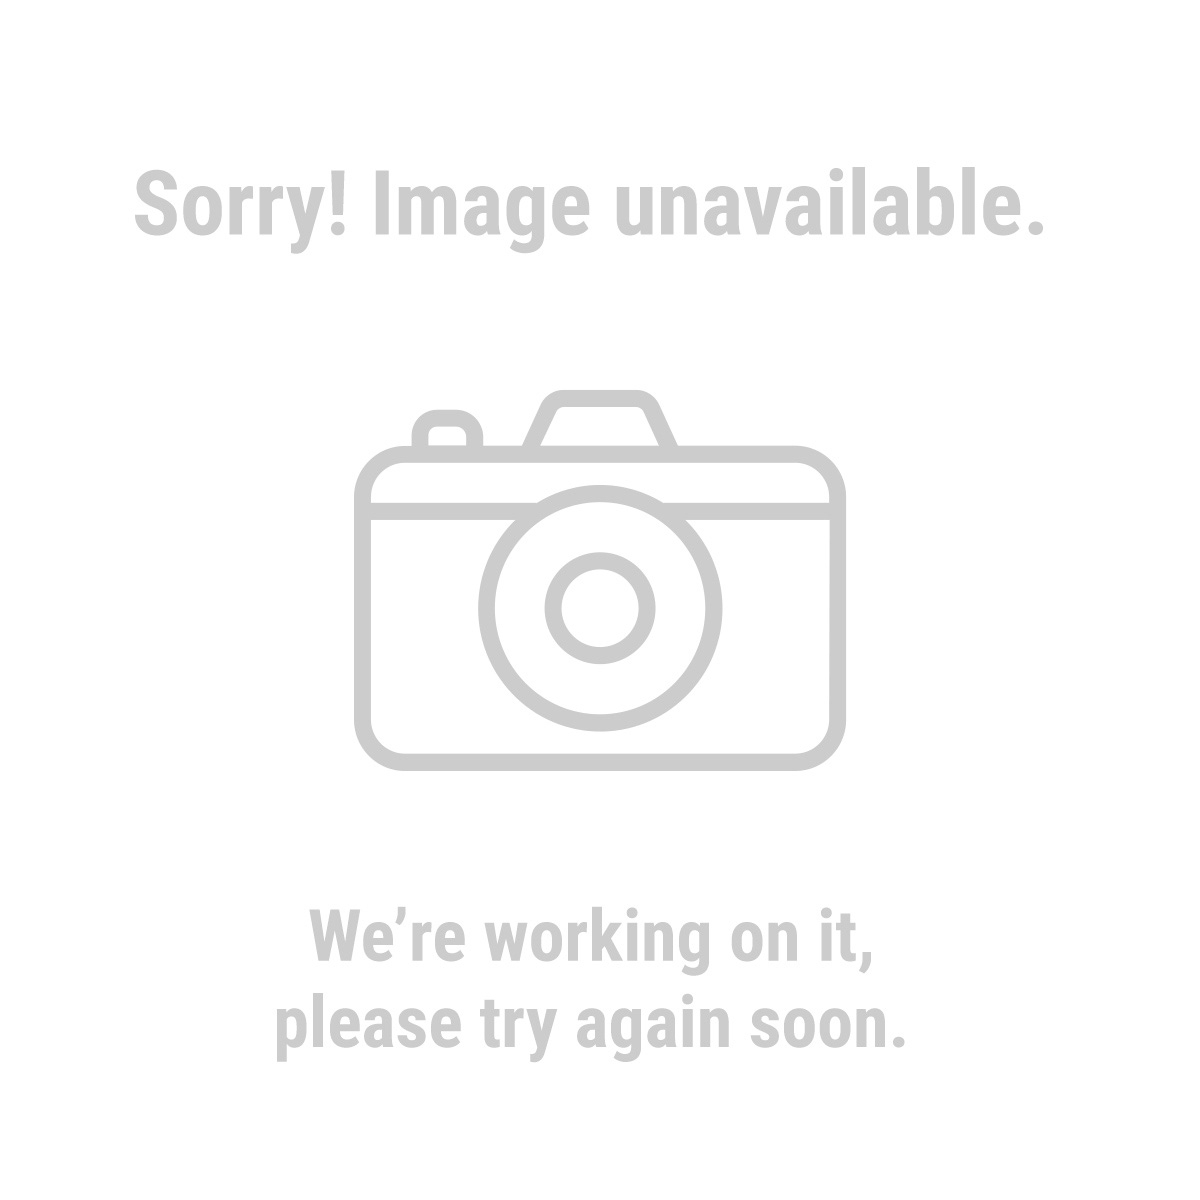 Western Safety 94701 Reflective Safety Vest - Large